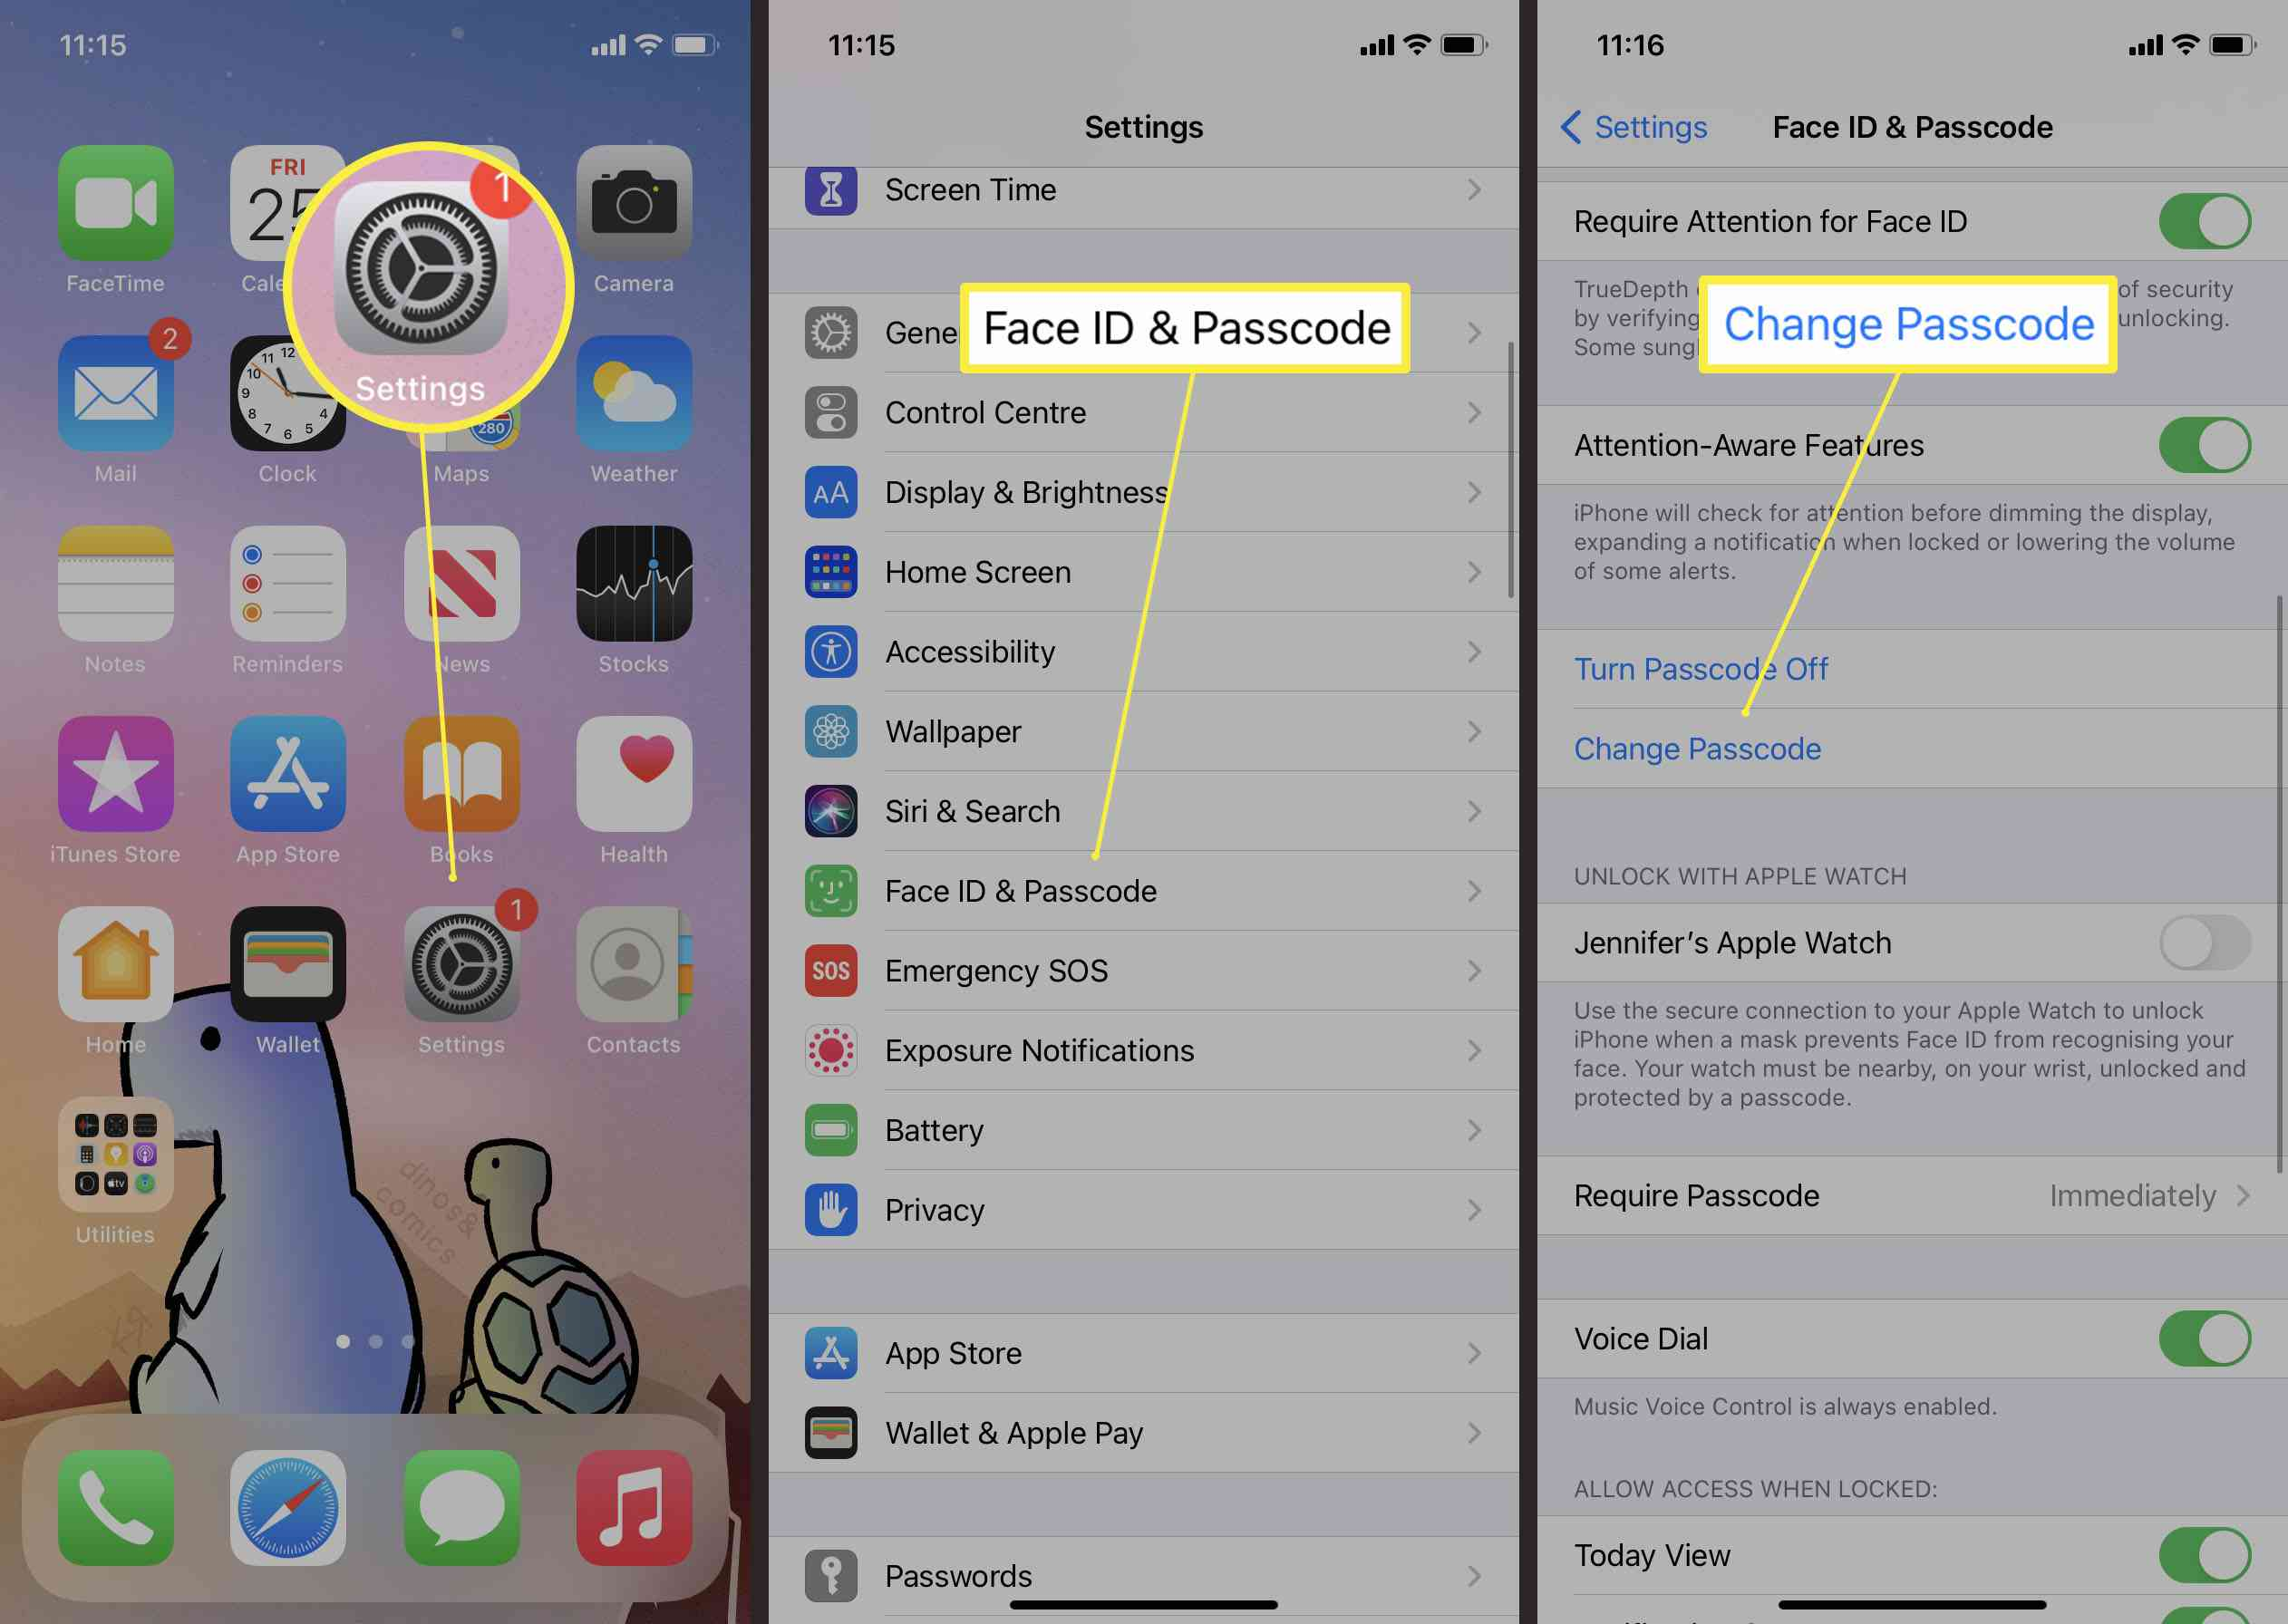 Steps required to change passcode on iPhone